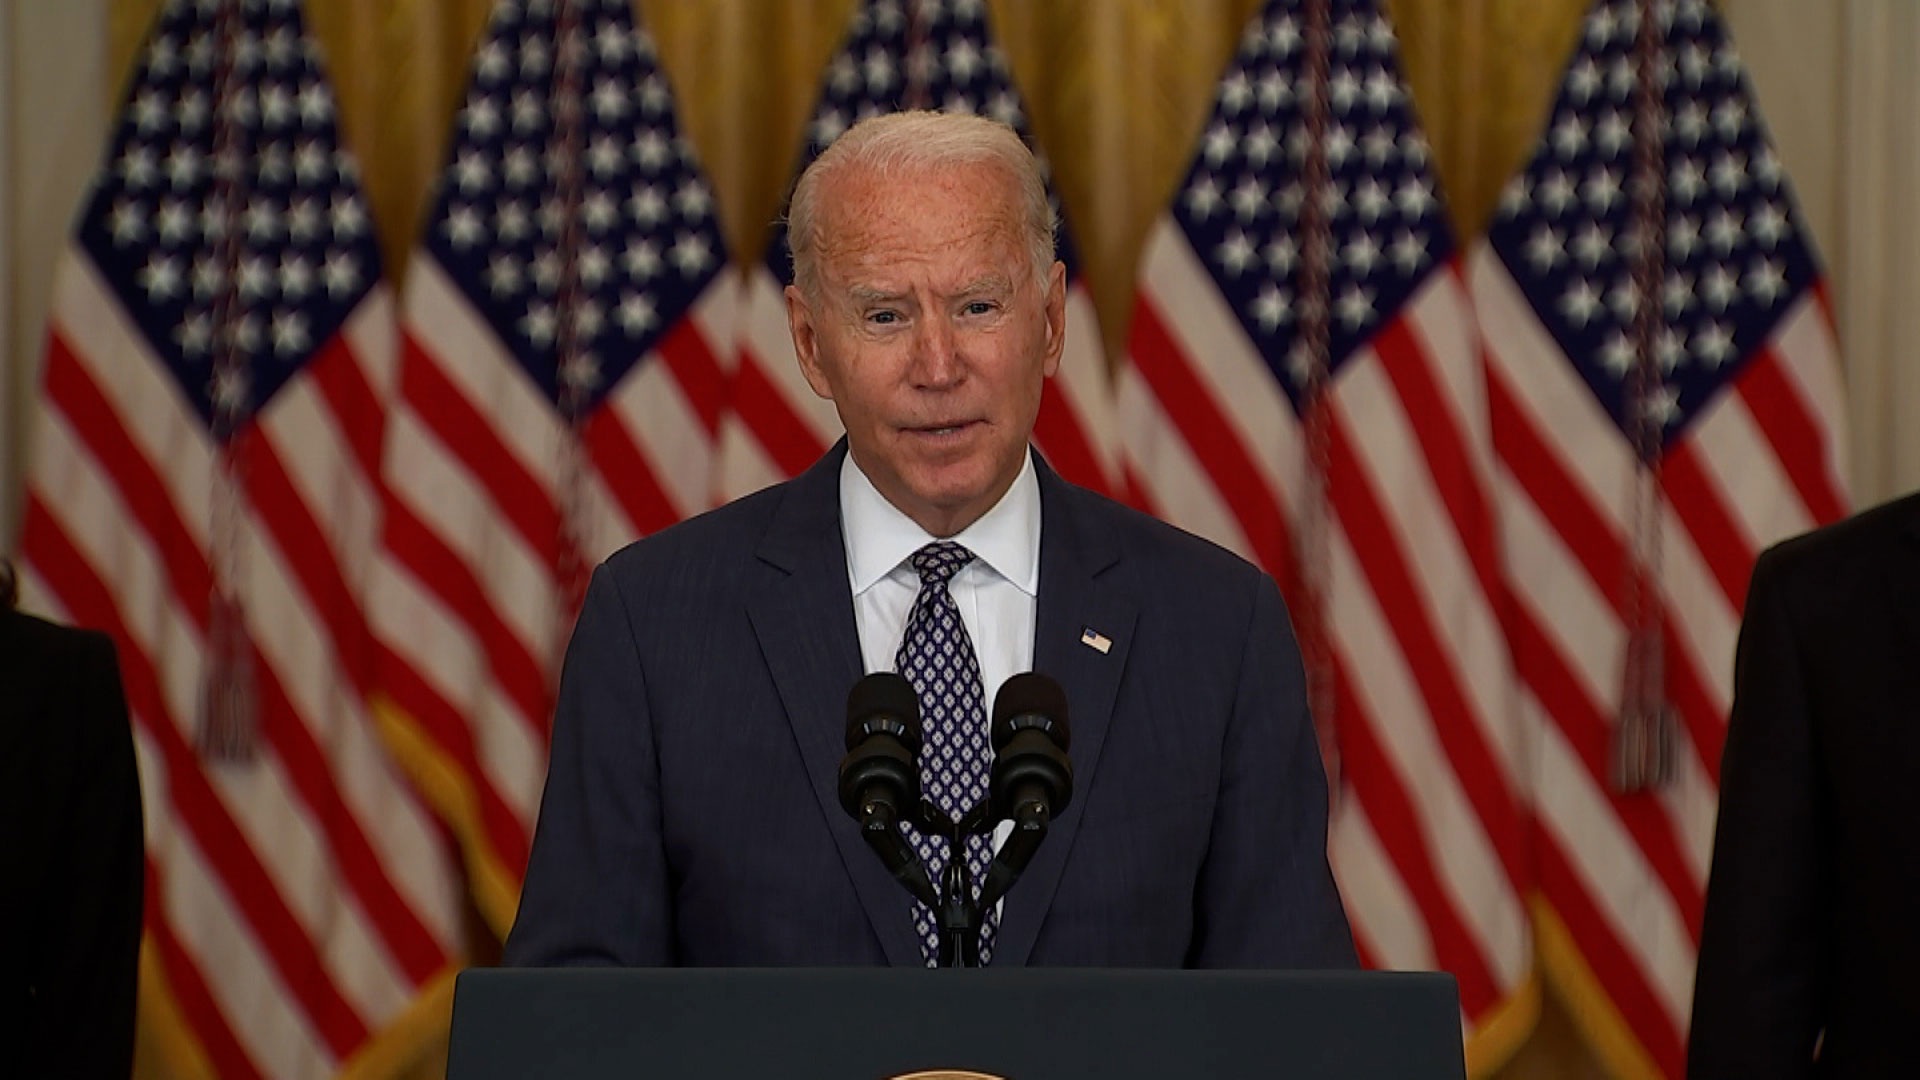 Biden speaks about Afghanistan evacuations as US scrambles to find more places to fly evacuees